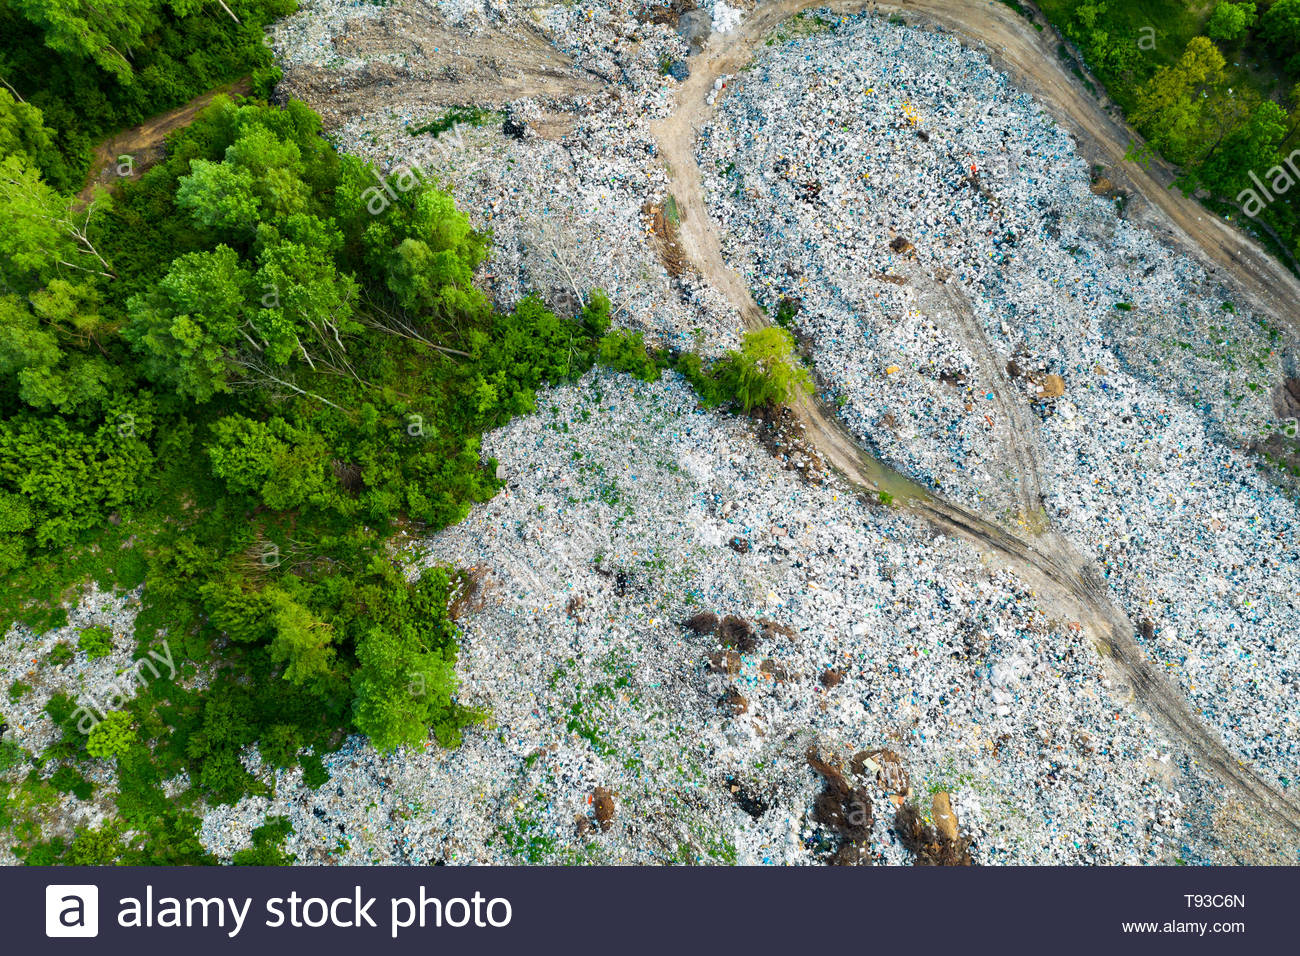 Aerial view of dump in forest. Pollution concept, top view. - Stock Image